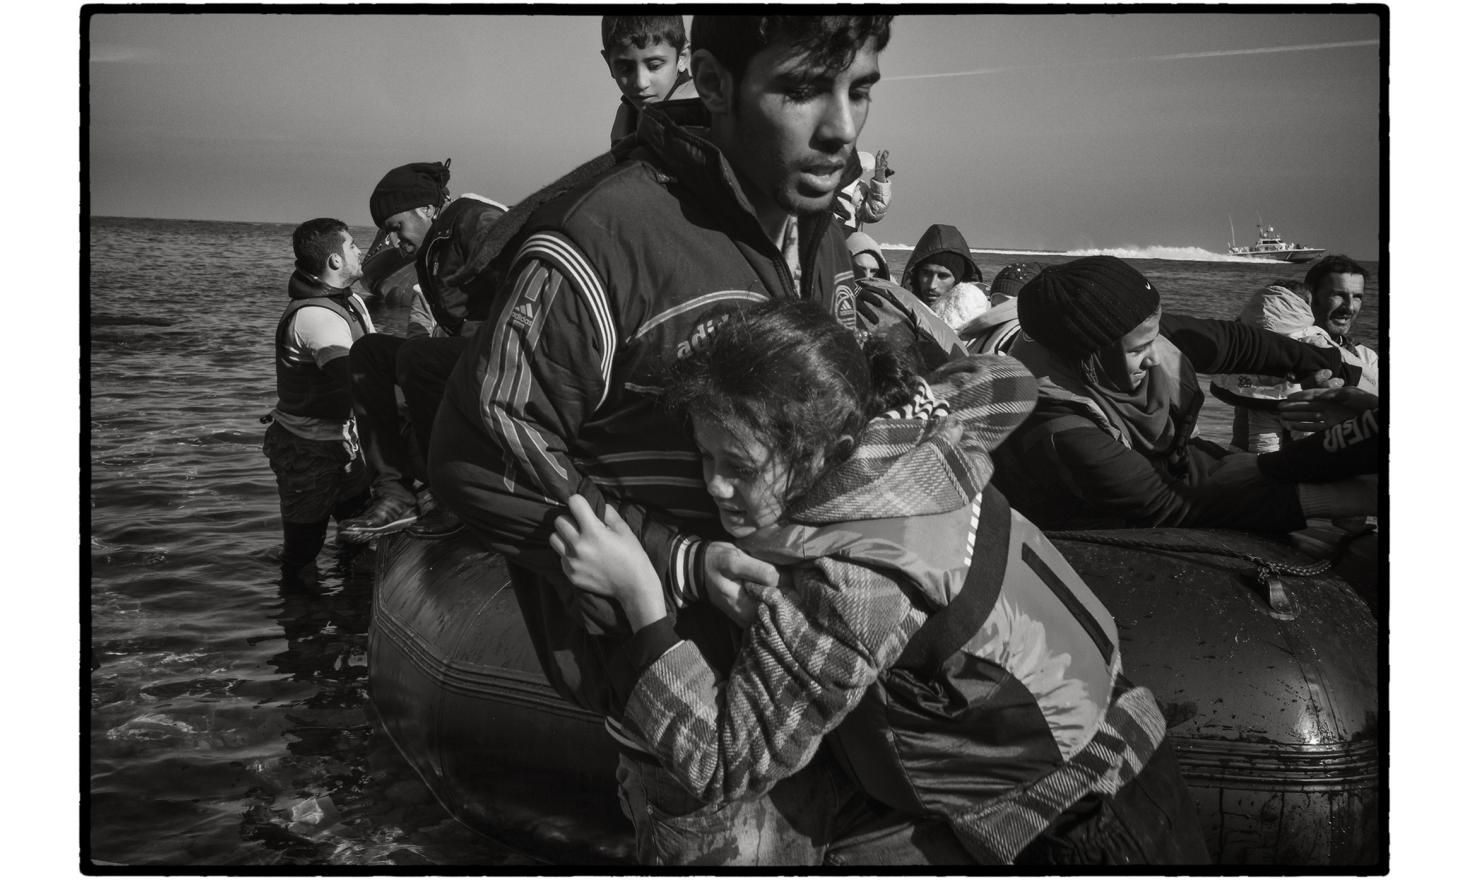 Lesbos, Greece. More often than not refugees cross in these inflatable zodiac boats, with traffickers managing to cram in over 50 people on each boat.